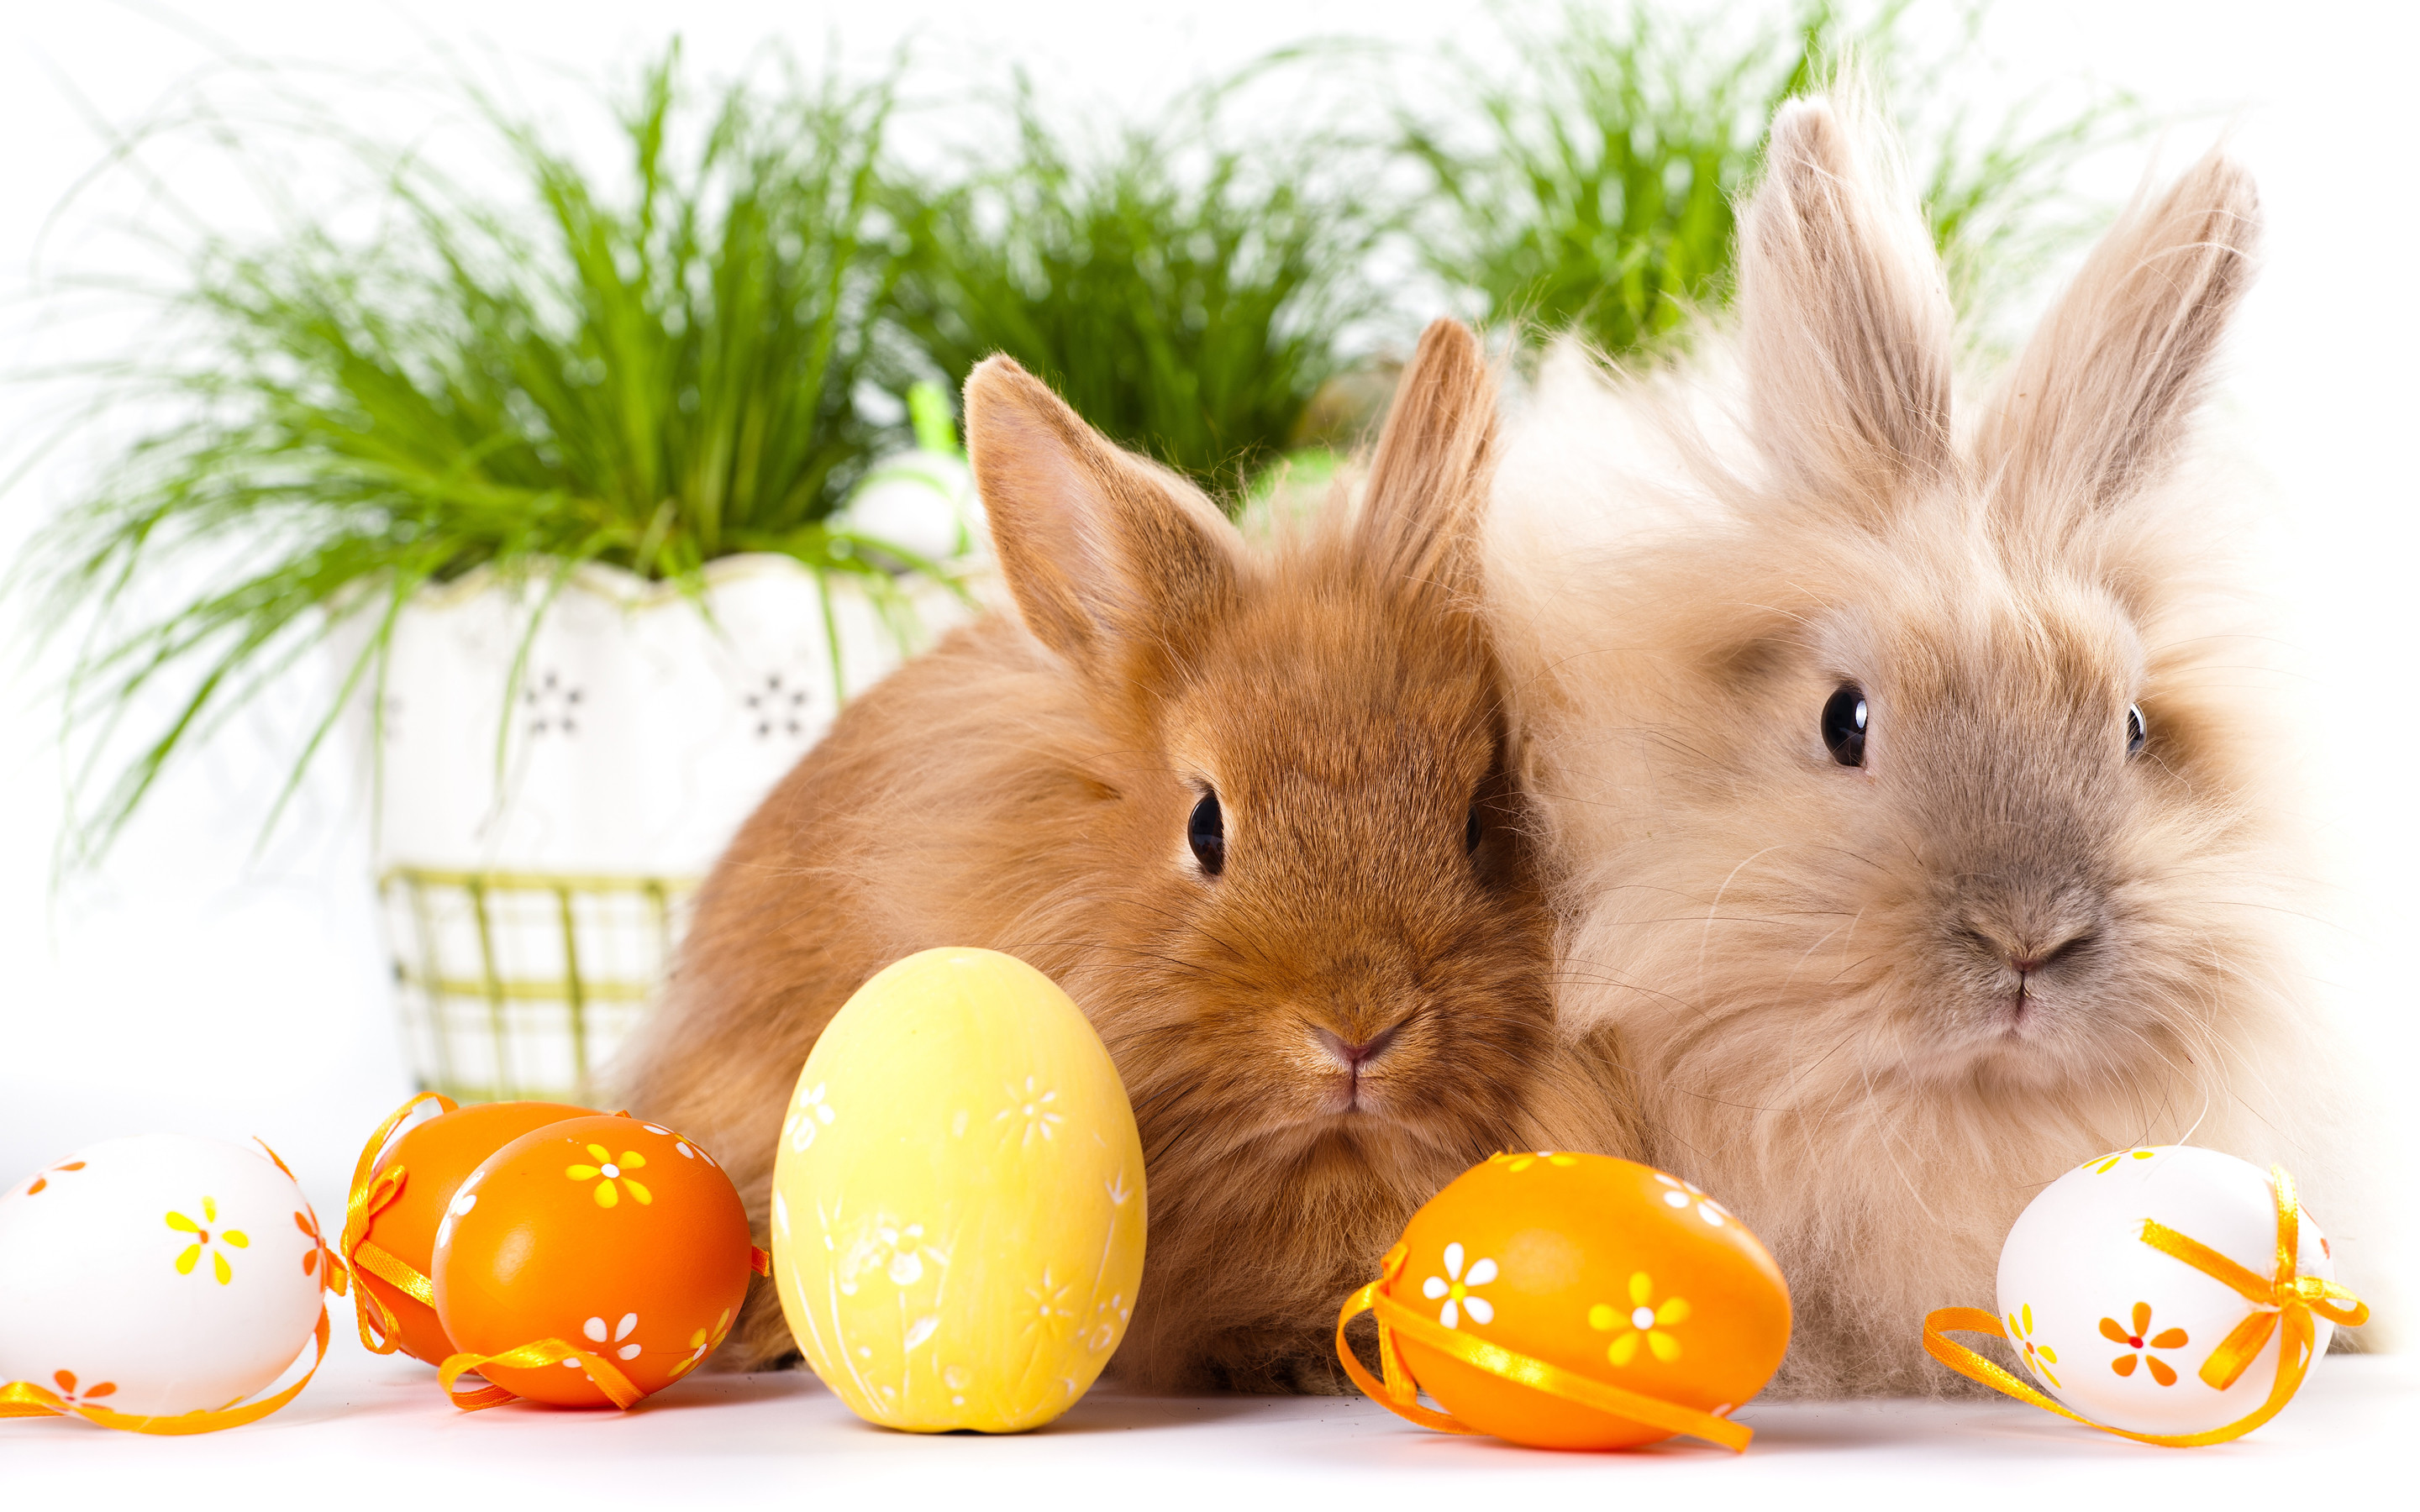 Easter Bunny Wallpapers 64 Images